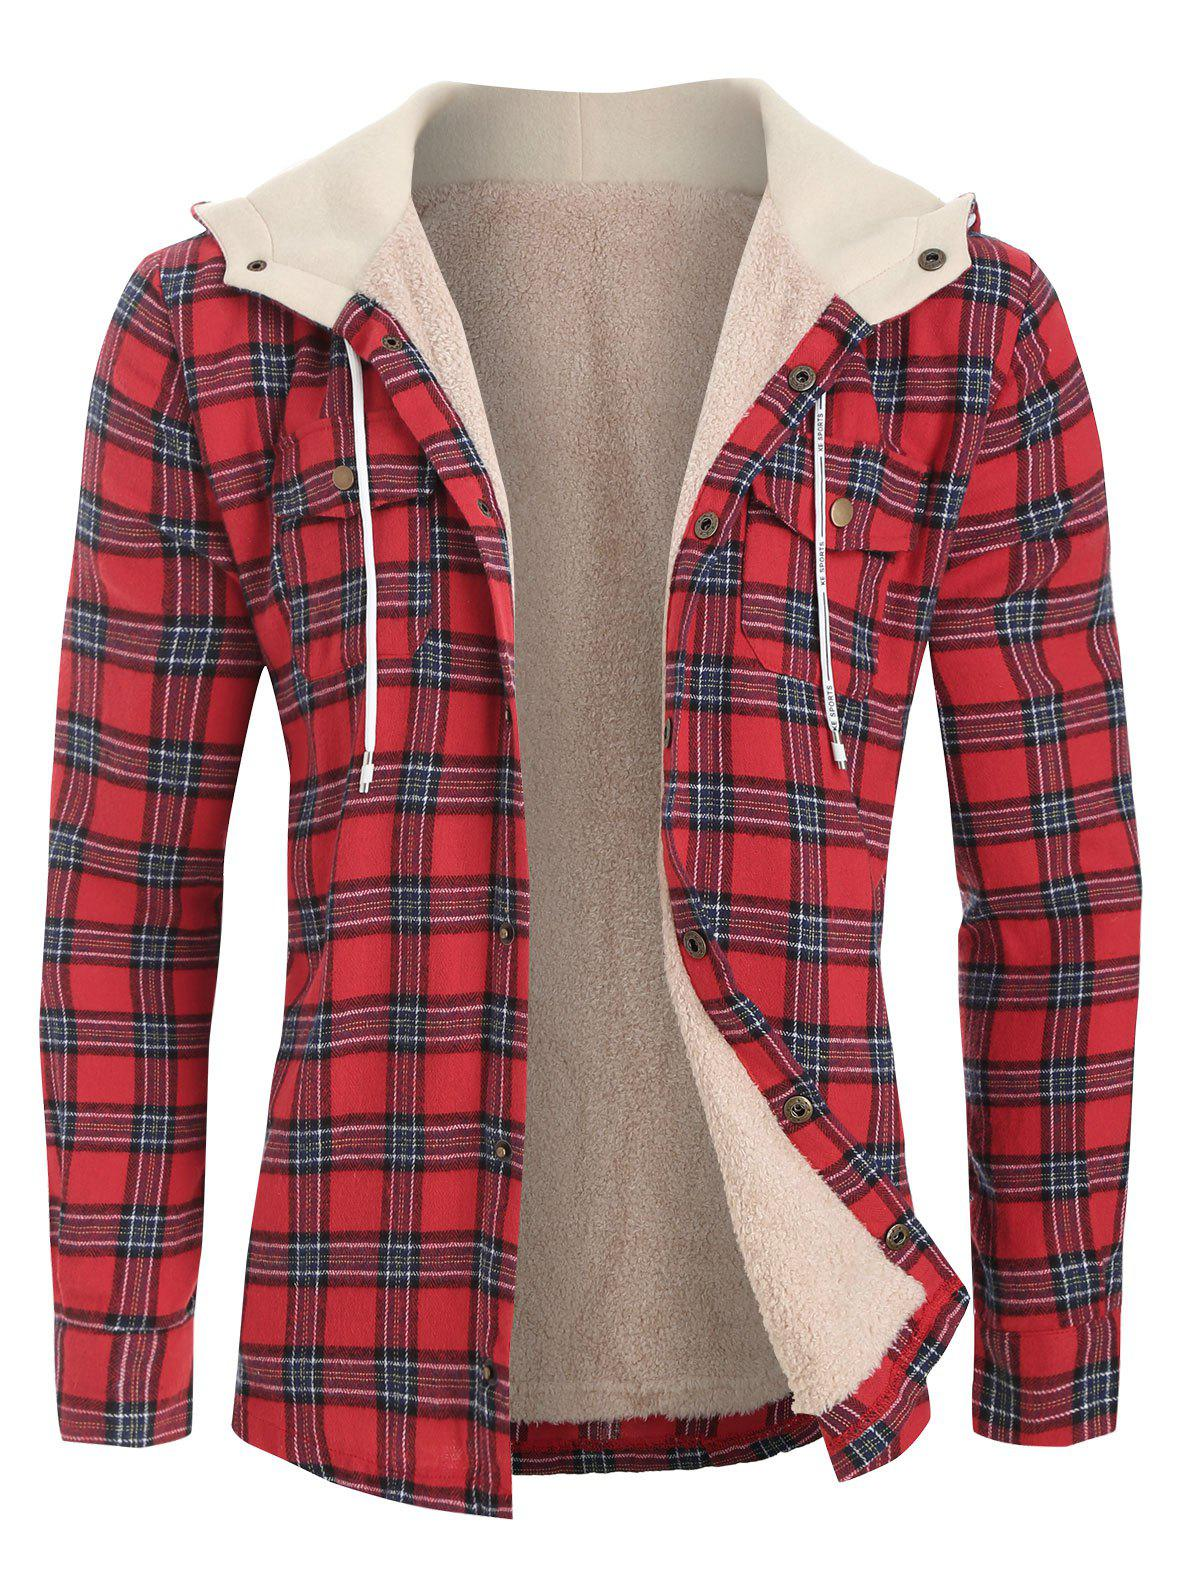 Plaid Chest Pocket Fleece Hooded Jacket - RED 2XL